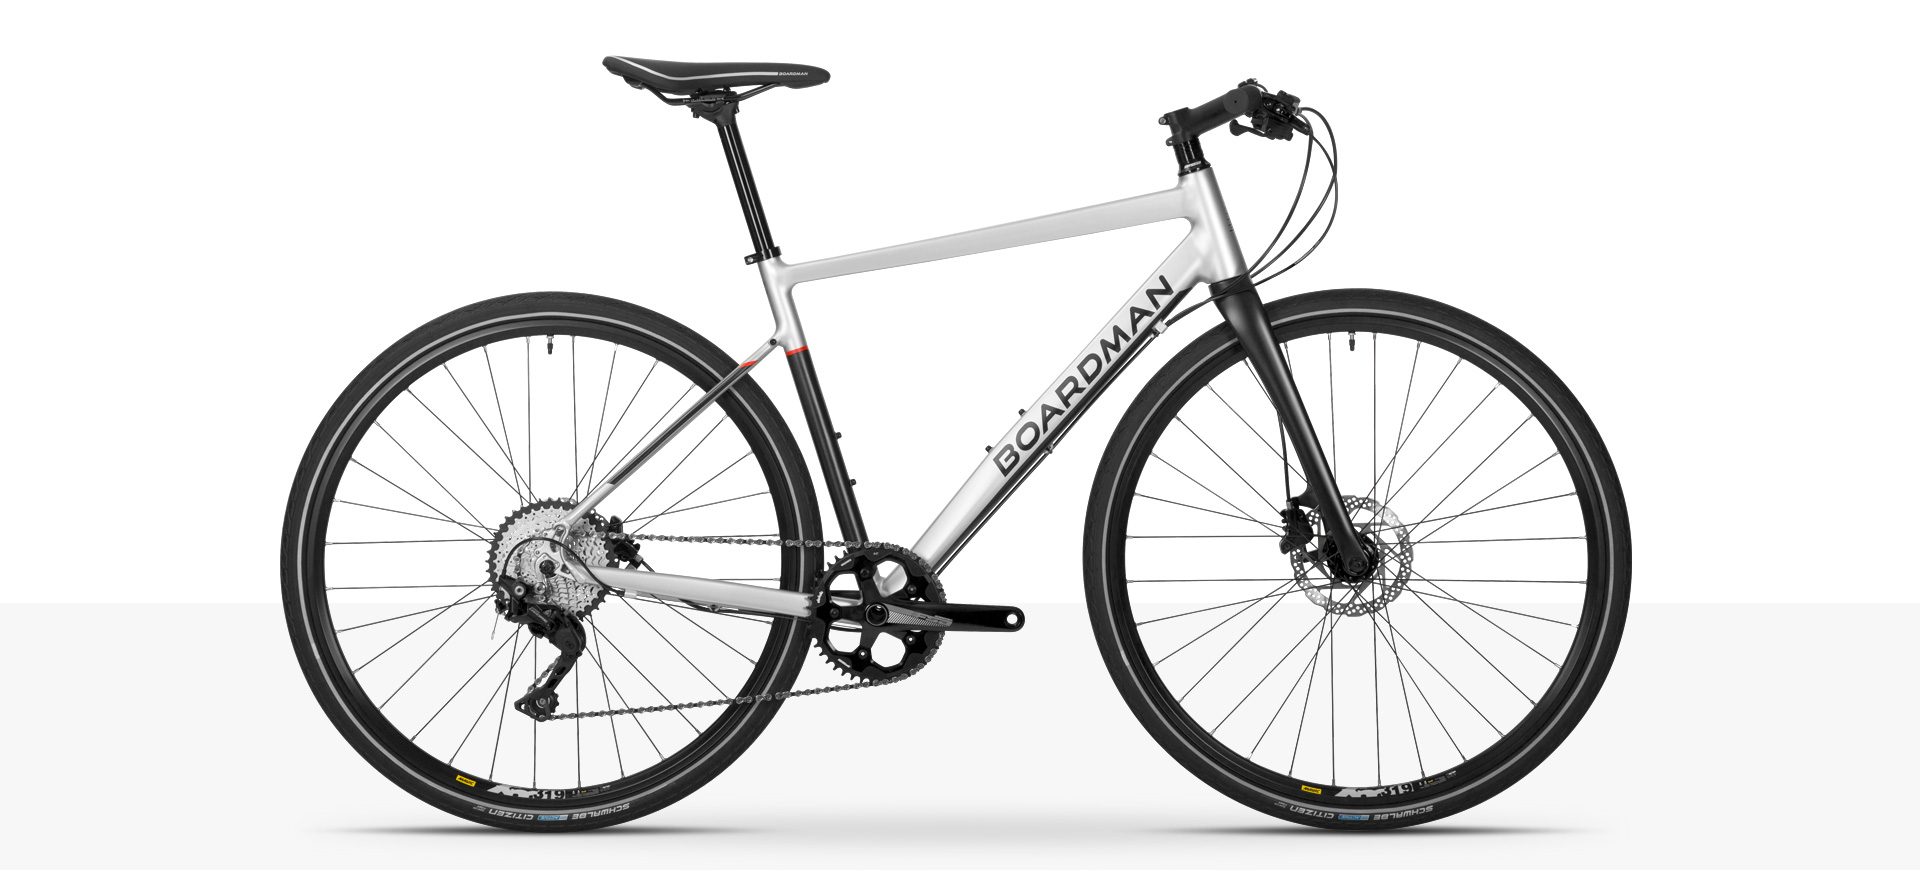 Boardman HYB 8.8 Hybrid Bike in Silver